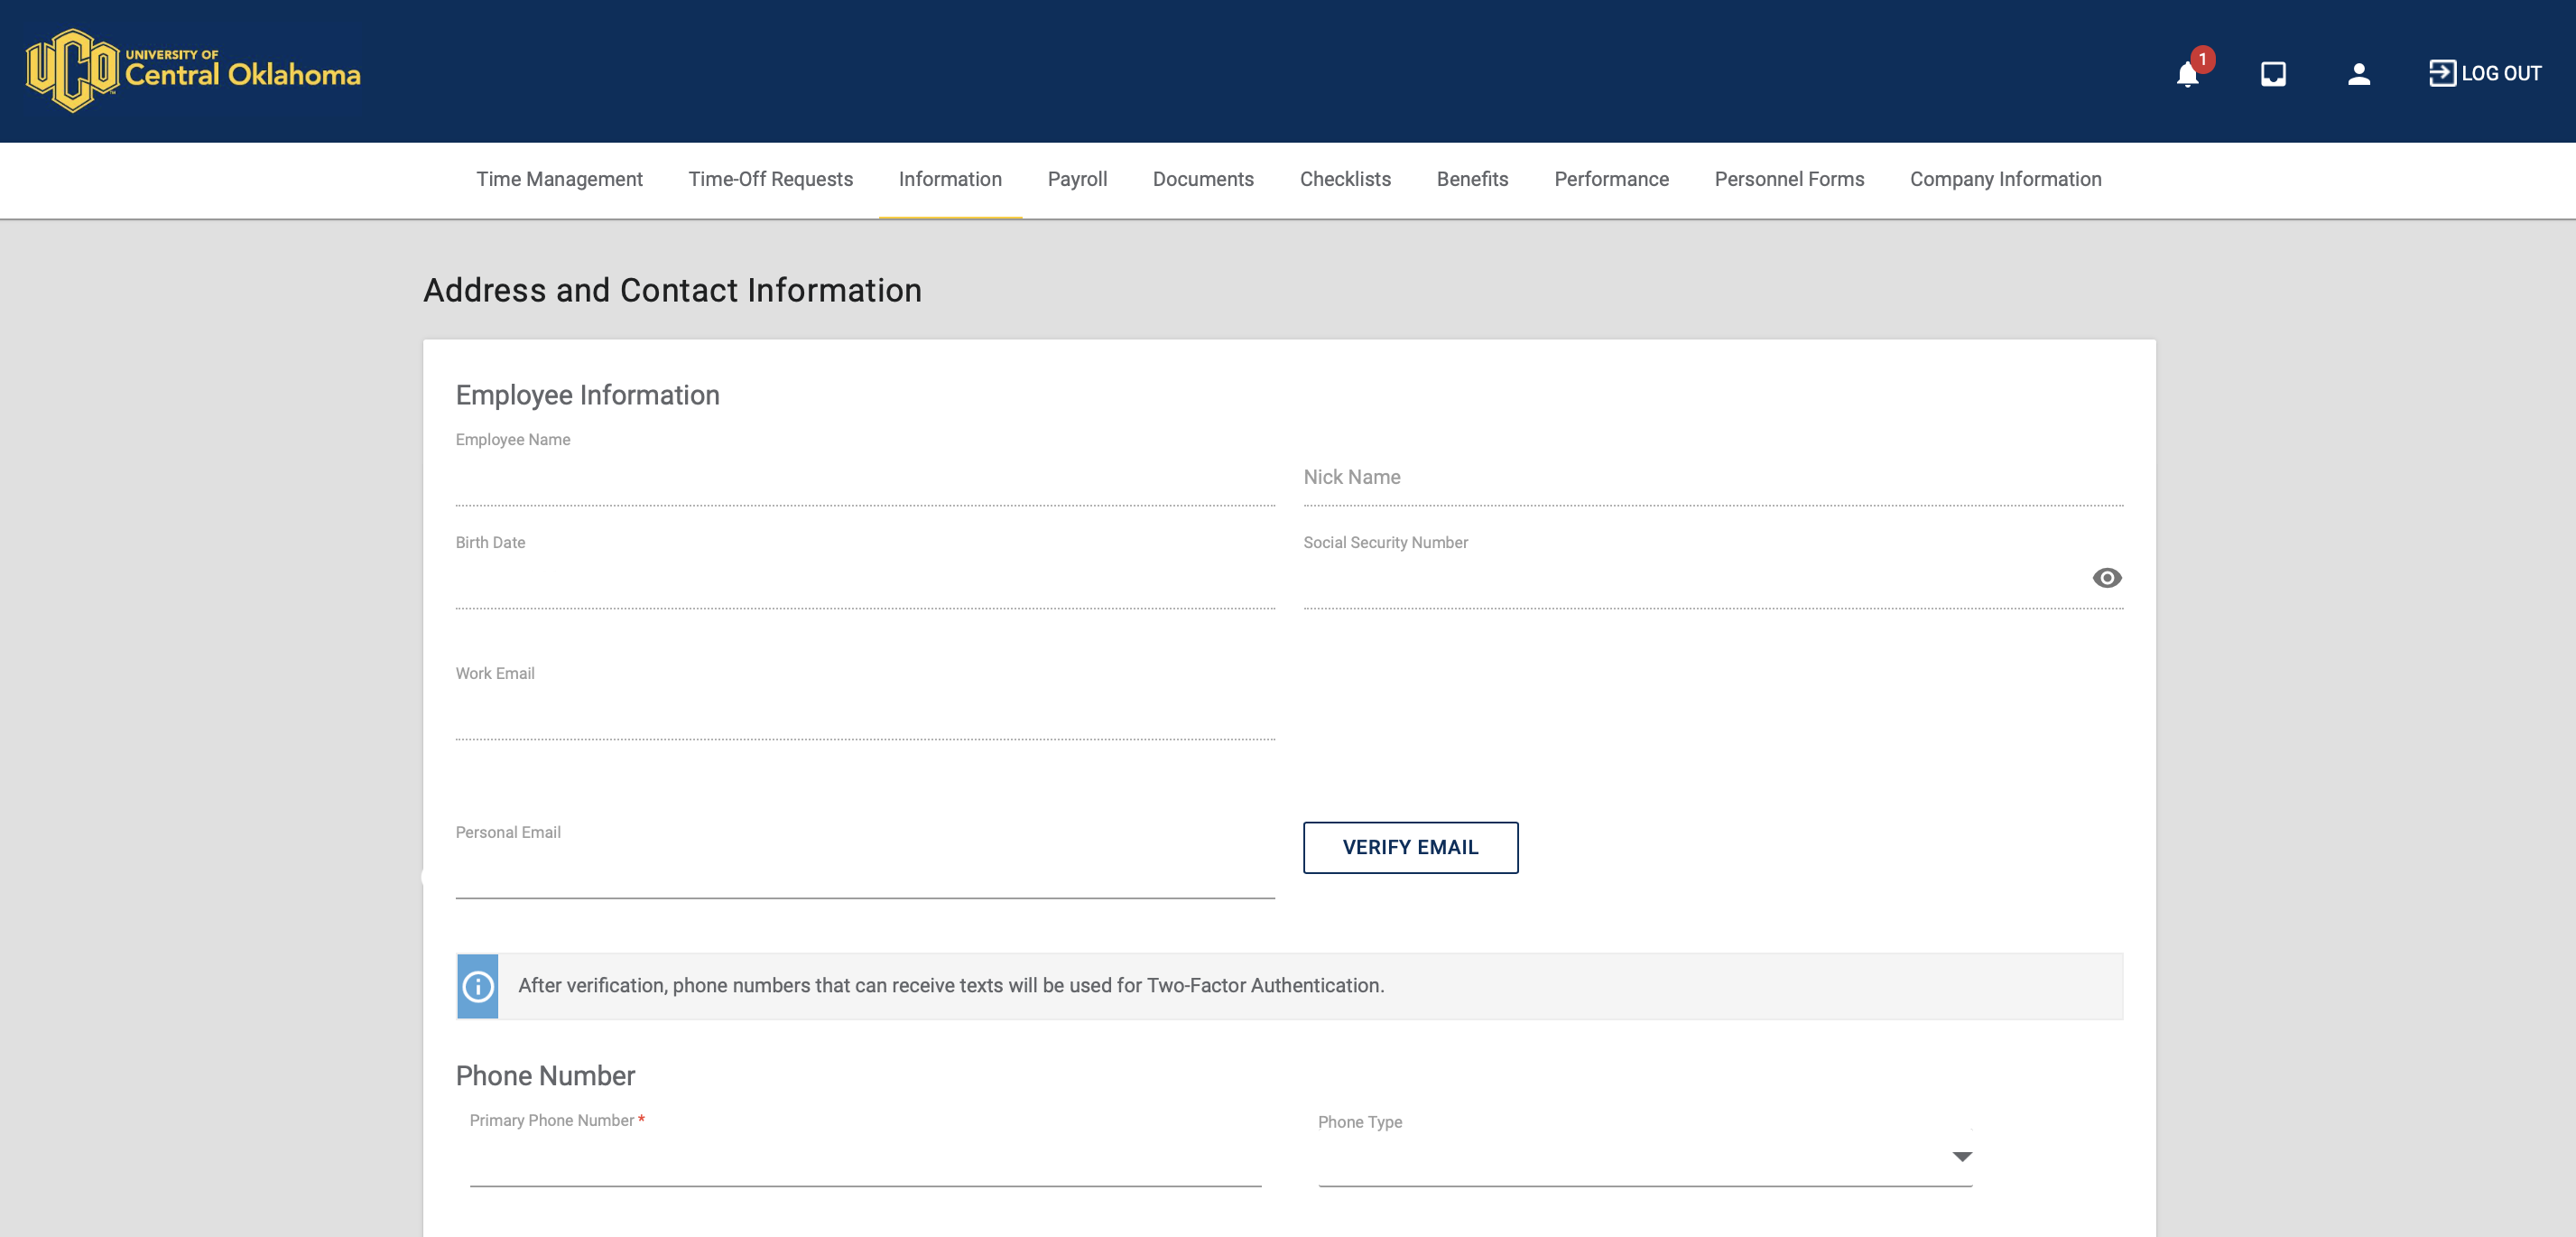 Enter your contact information into the fields provided